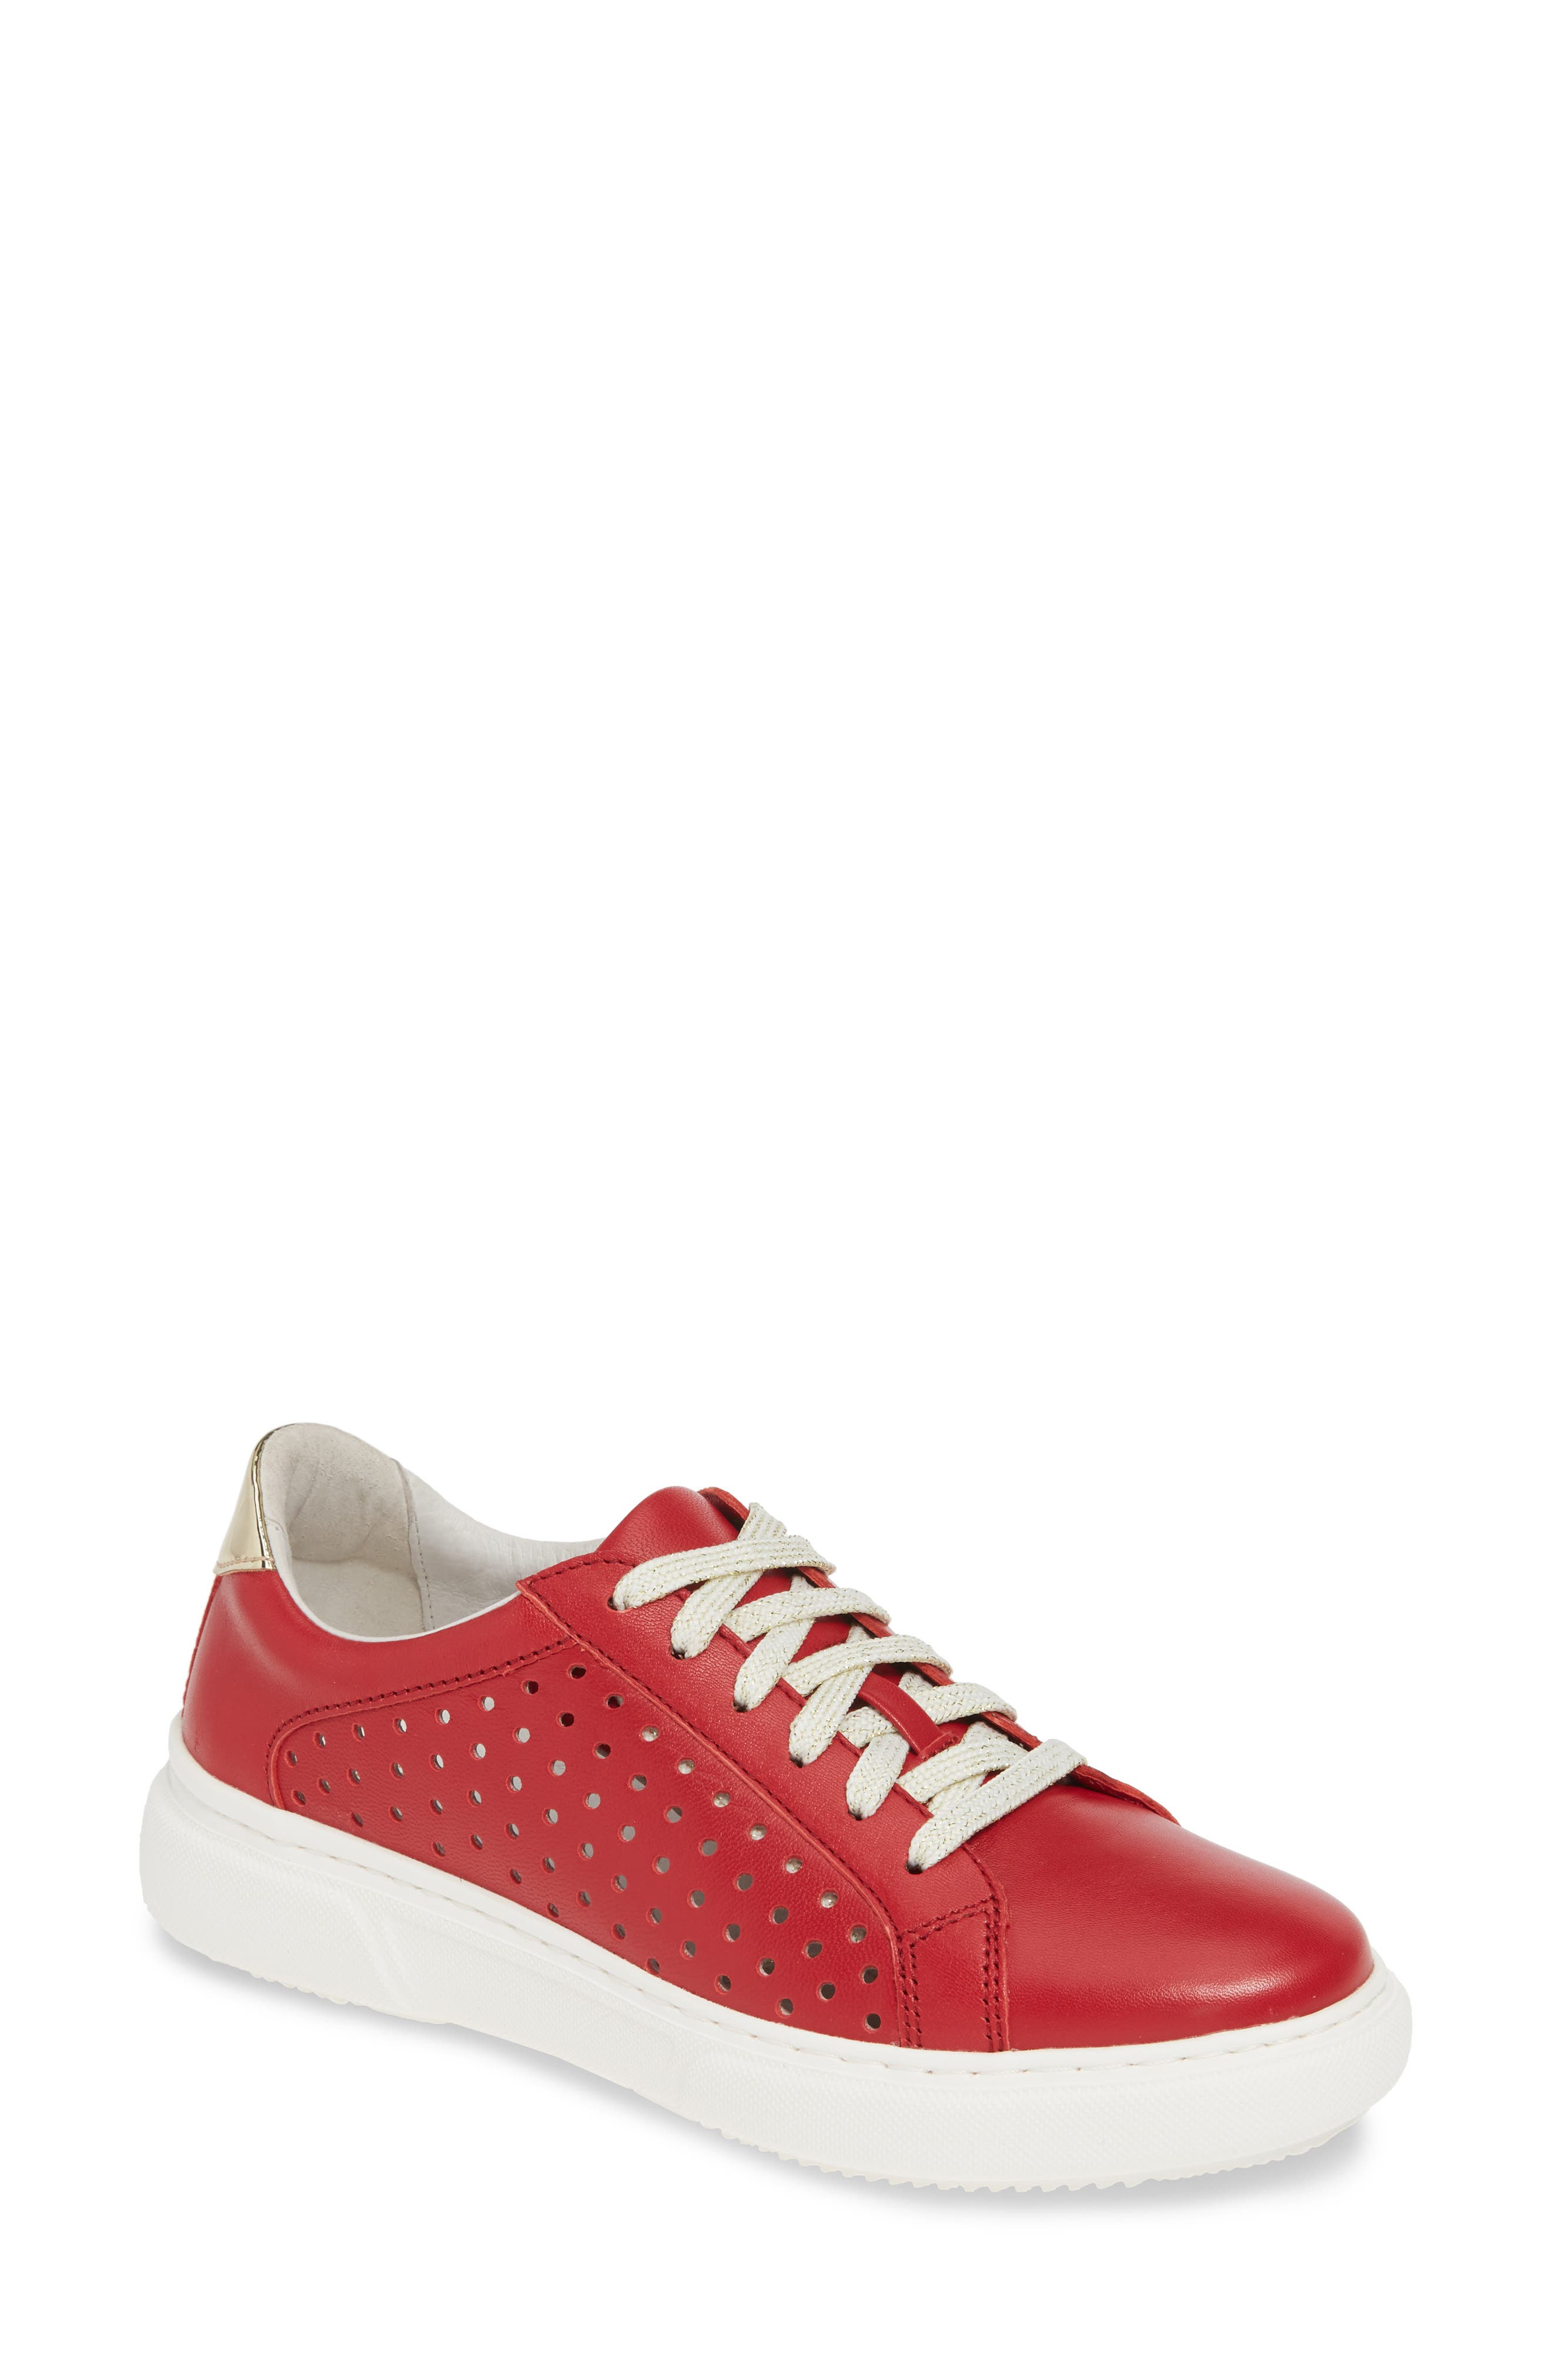 Johnston & Murphy Nora Perforated Sneaker, Red